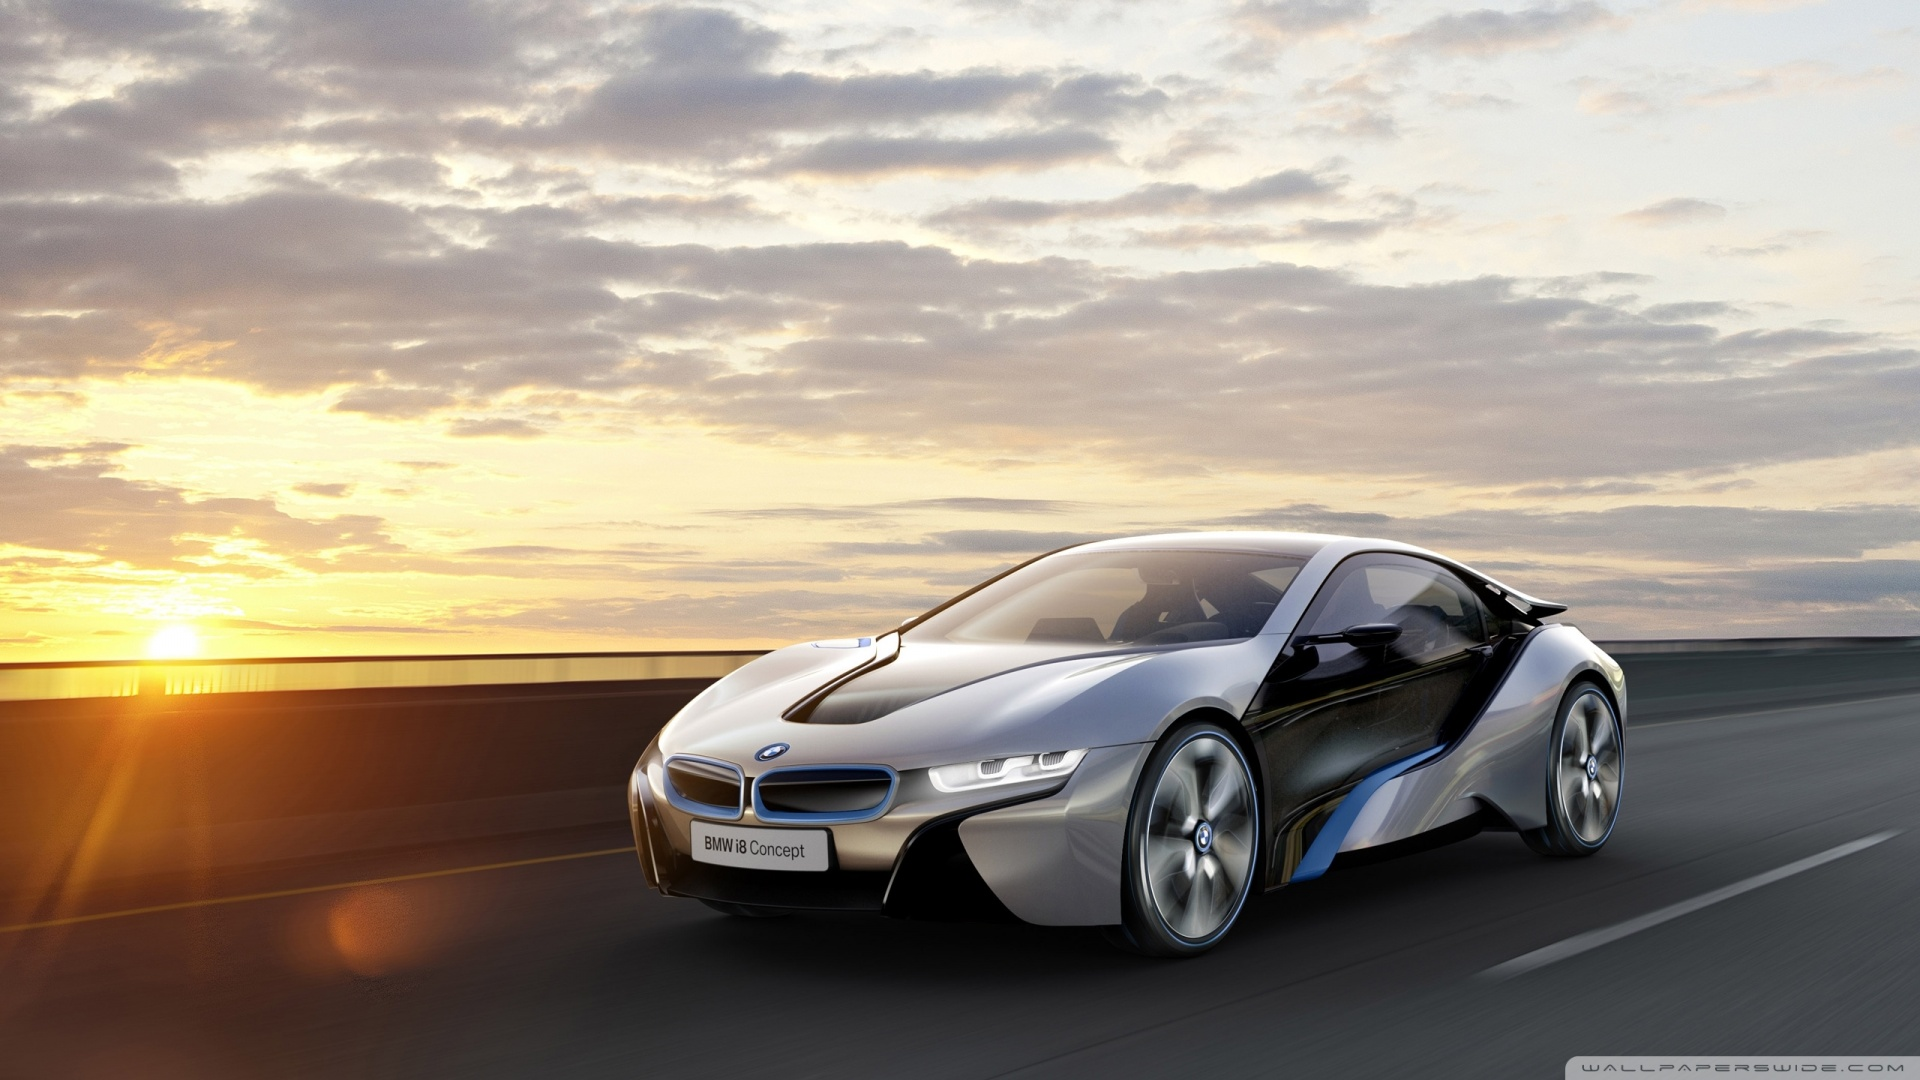 Bmw I8 Iphone Wallpaper Wallpapersafari